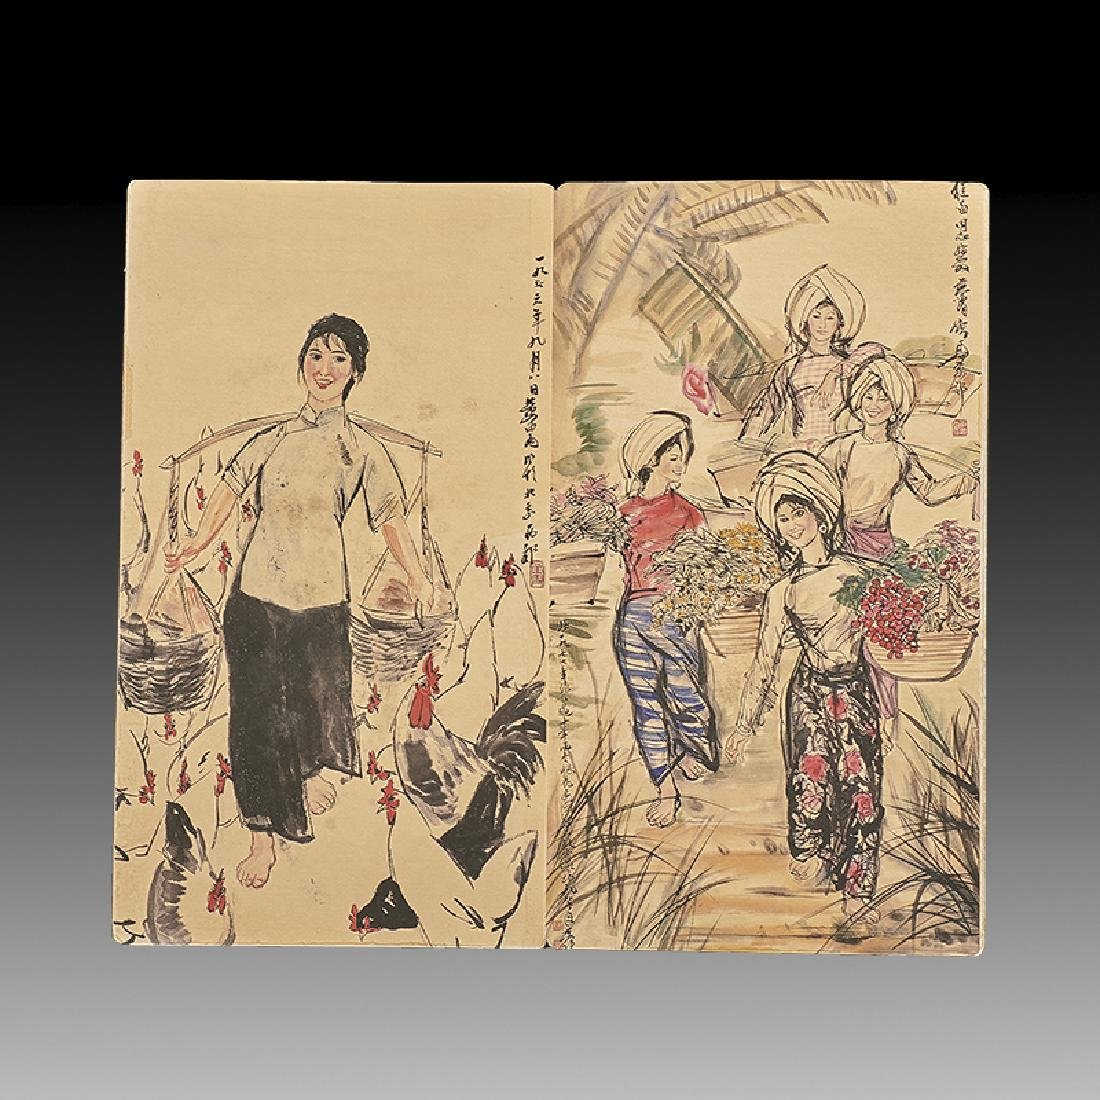 Rare chinese painting album by Hang zhou (1925-1997) - 6